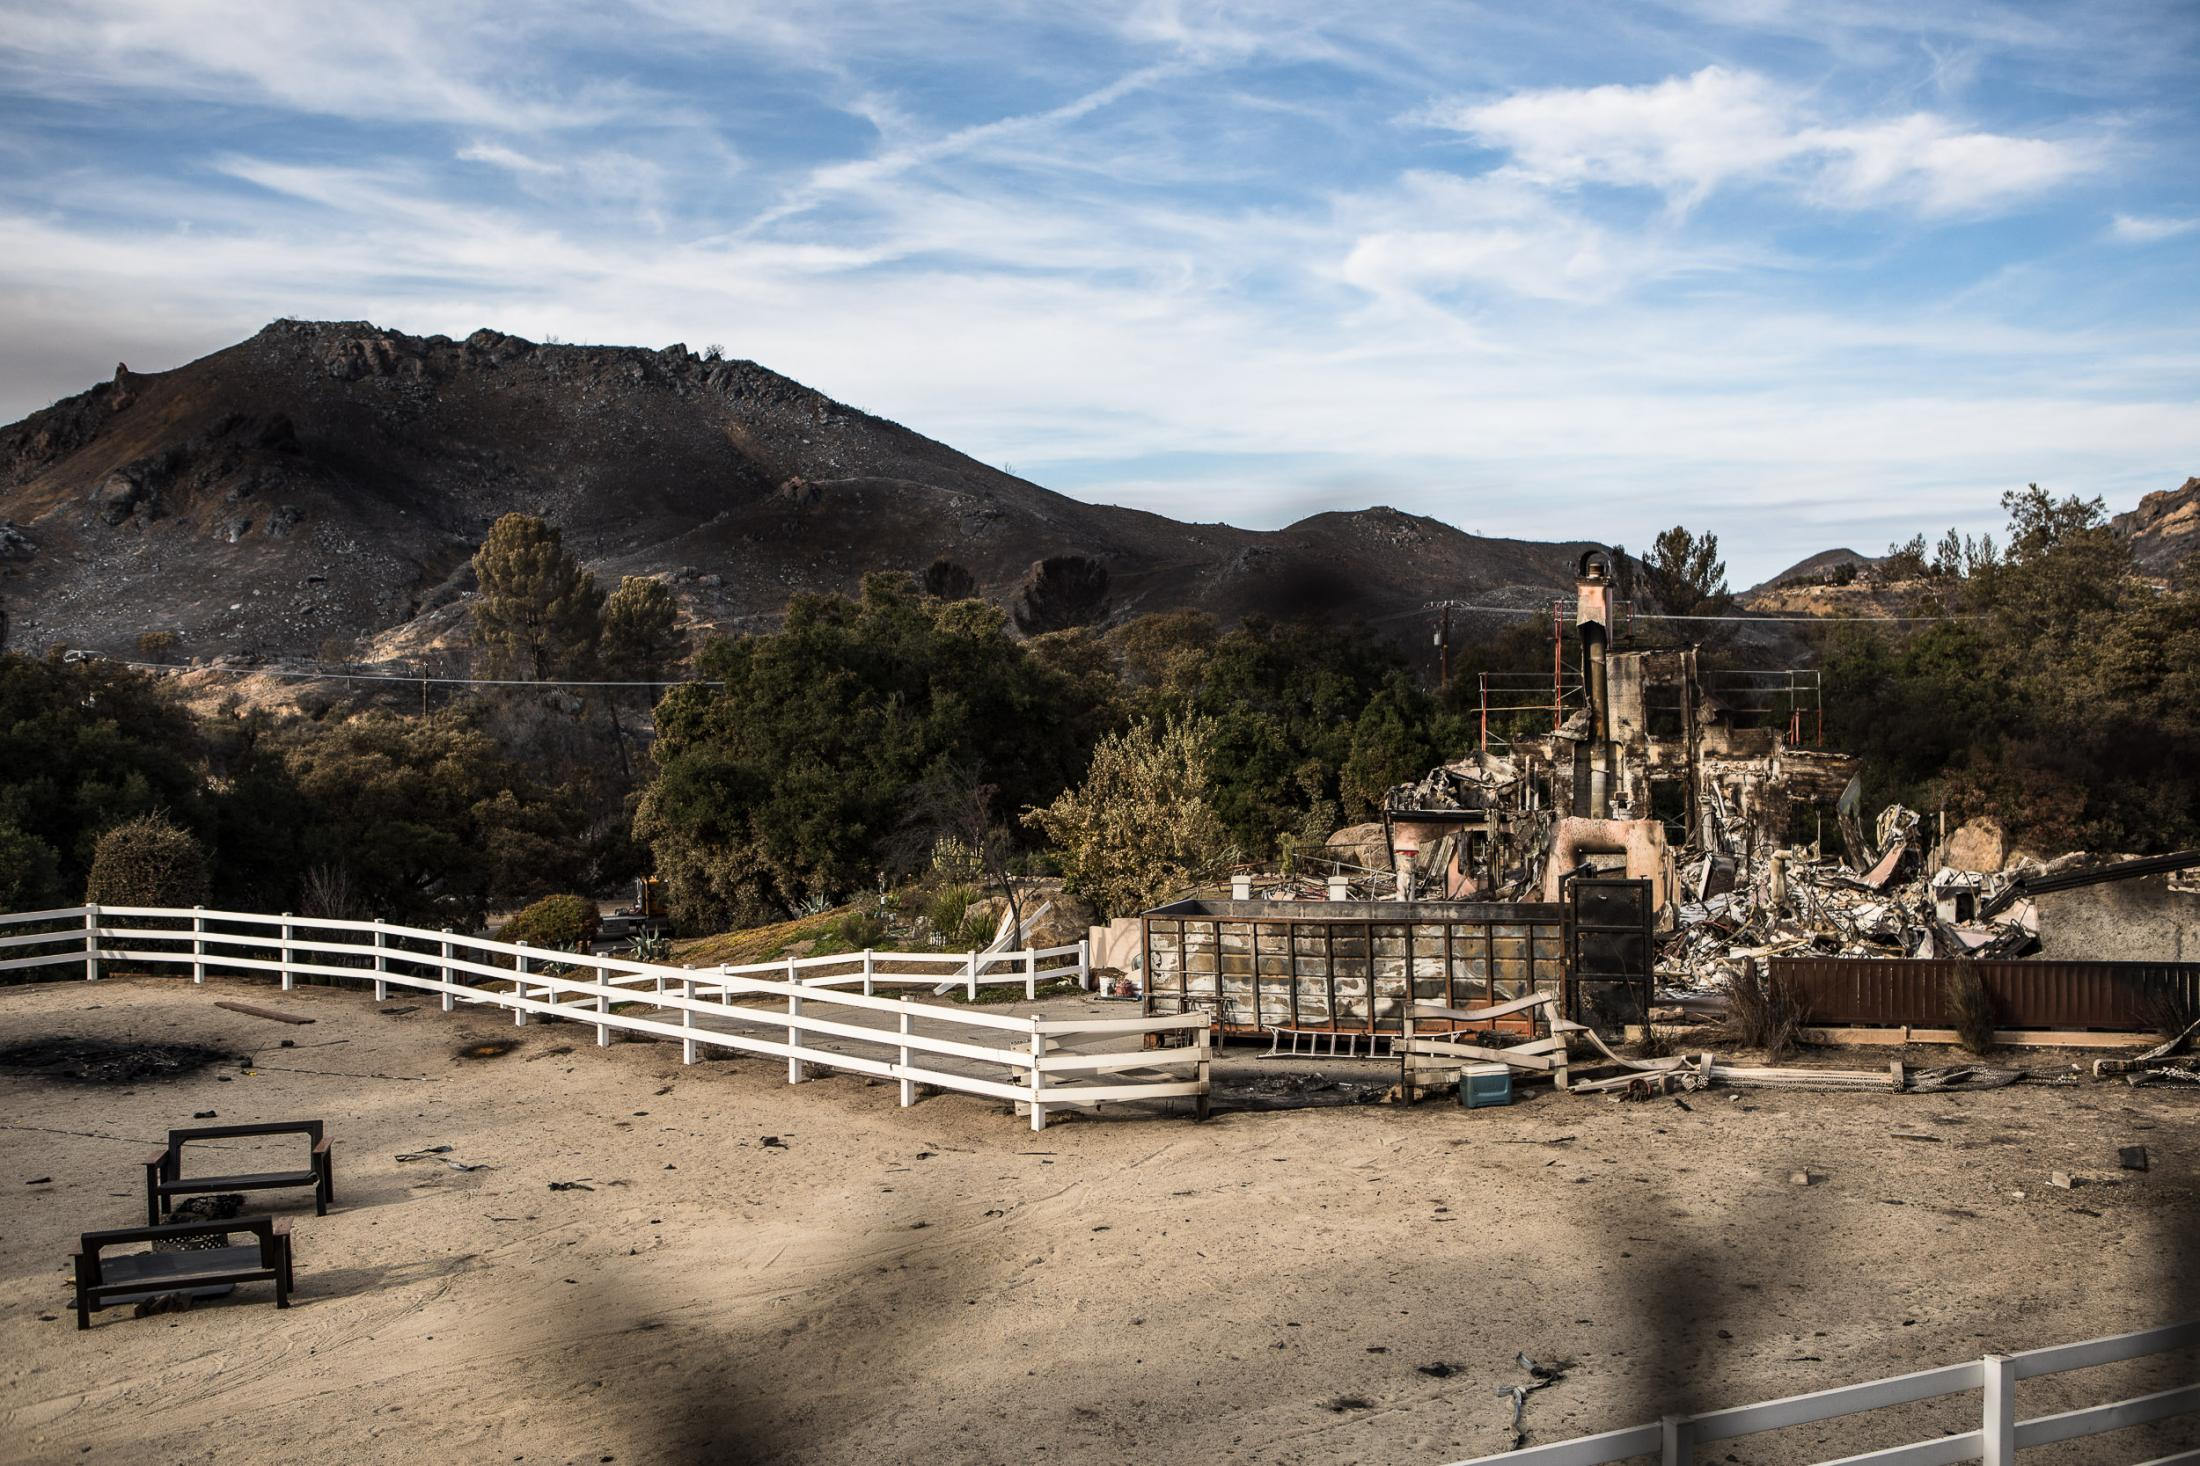 The fires just past though leaving nothing but devastation.